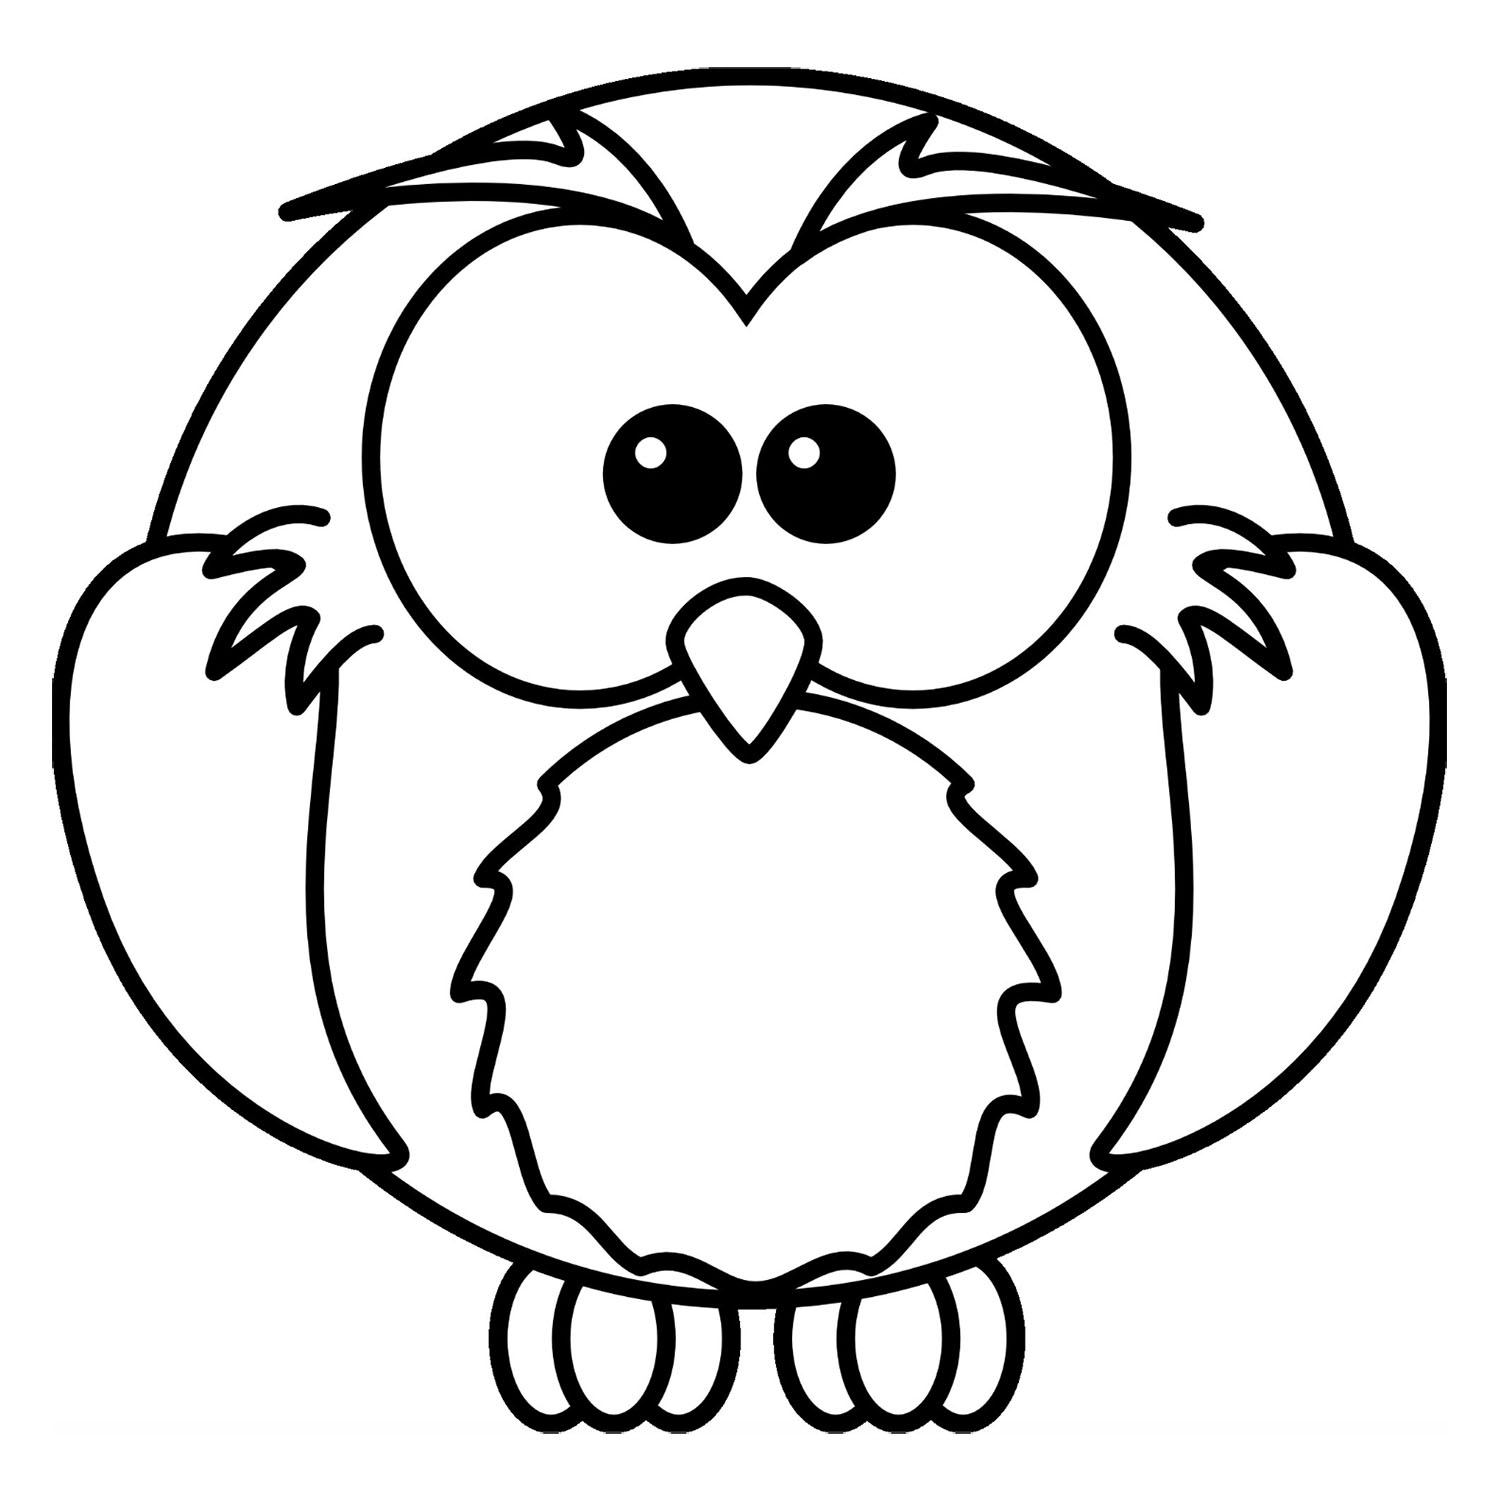 printable pictures of birds free book bird birds adult coloring pages printable of pictures birds